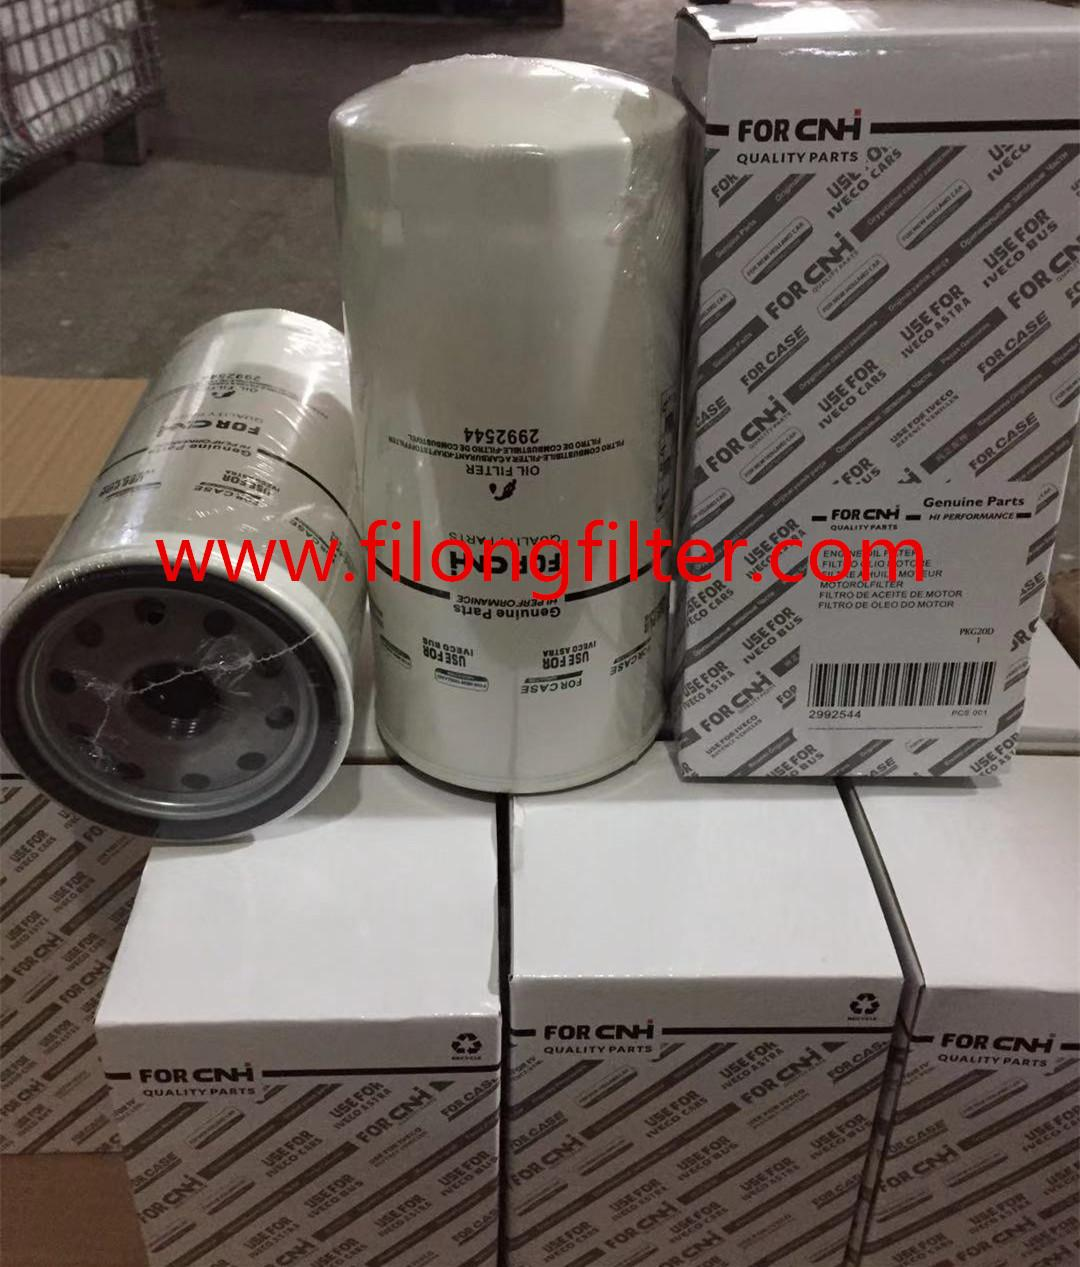 FILONG Manufactory For CNH New HOLLAND & IVECO Oil filter 504026056,99445200,2992544 1931099  5001863139 H230W  W1170/7